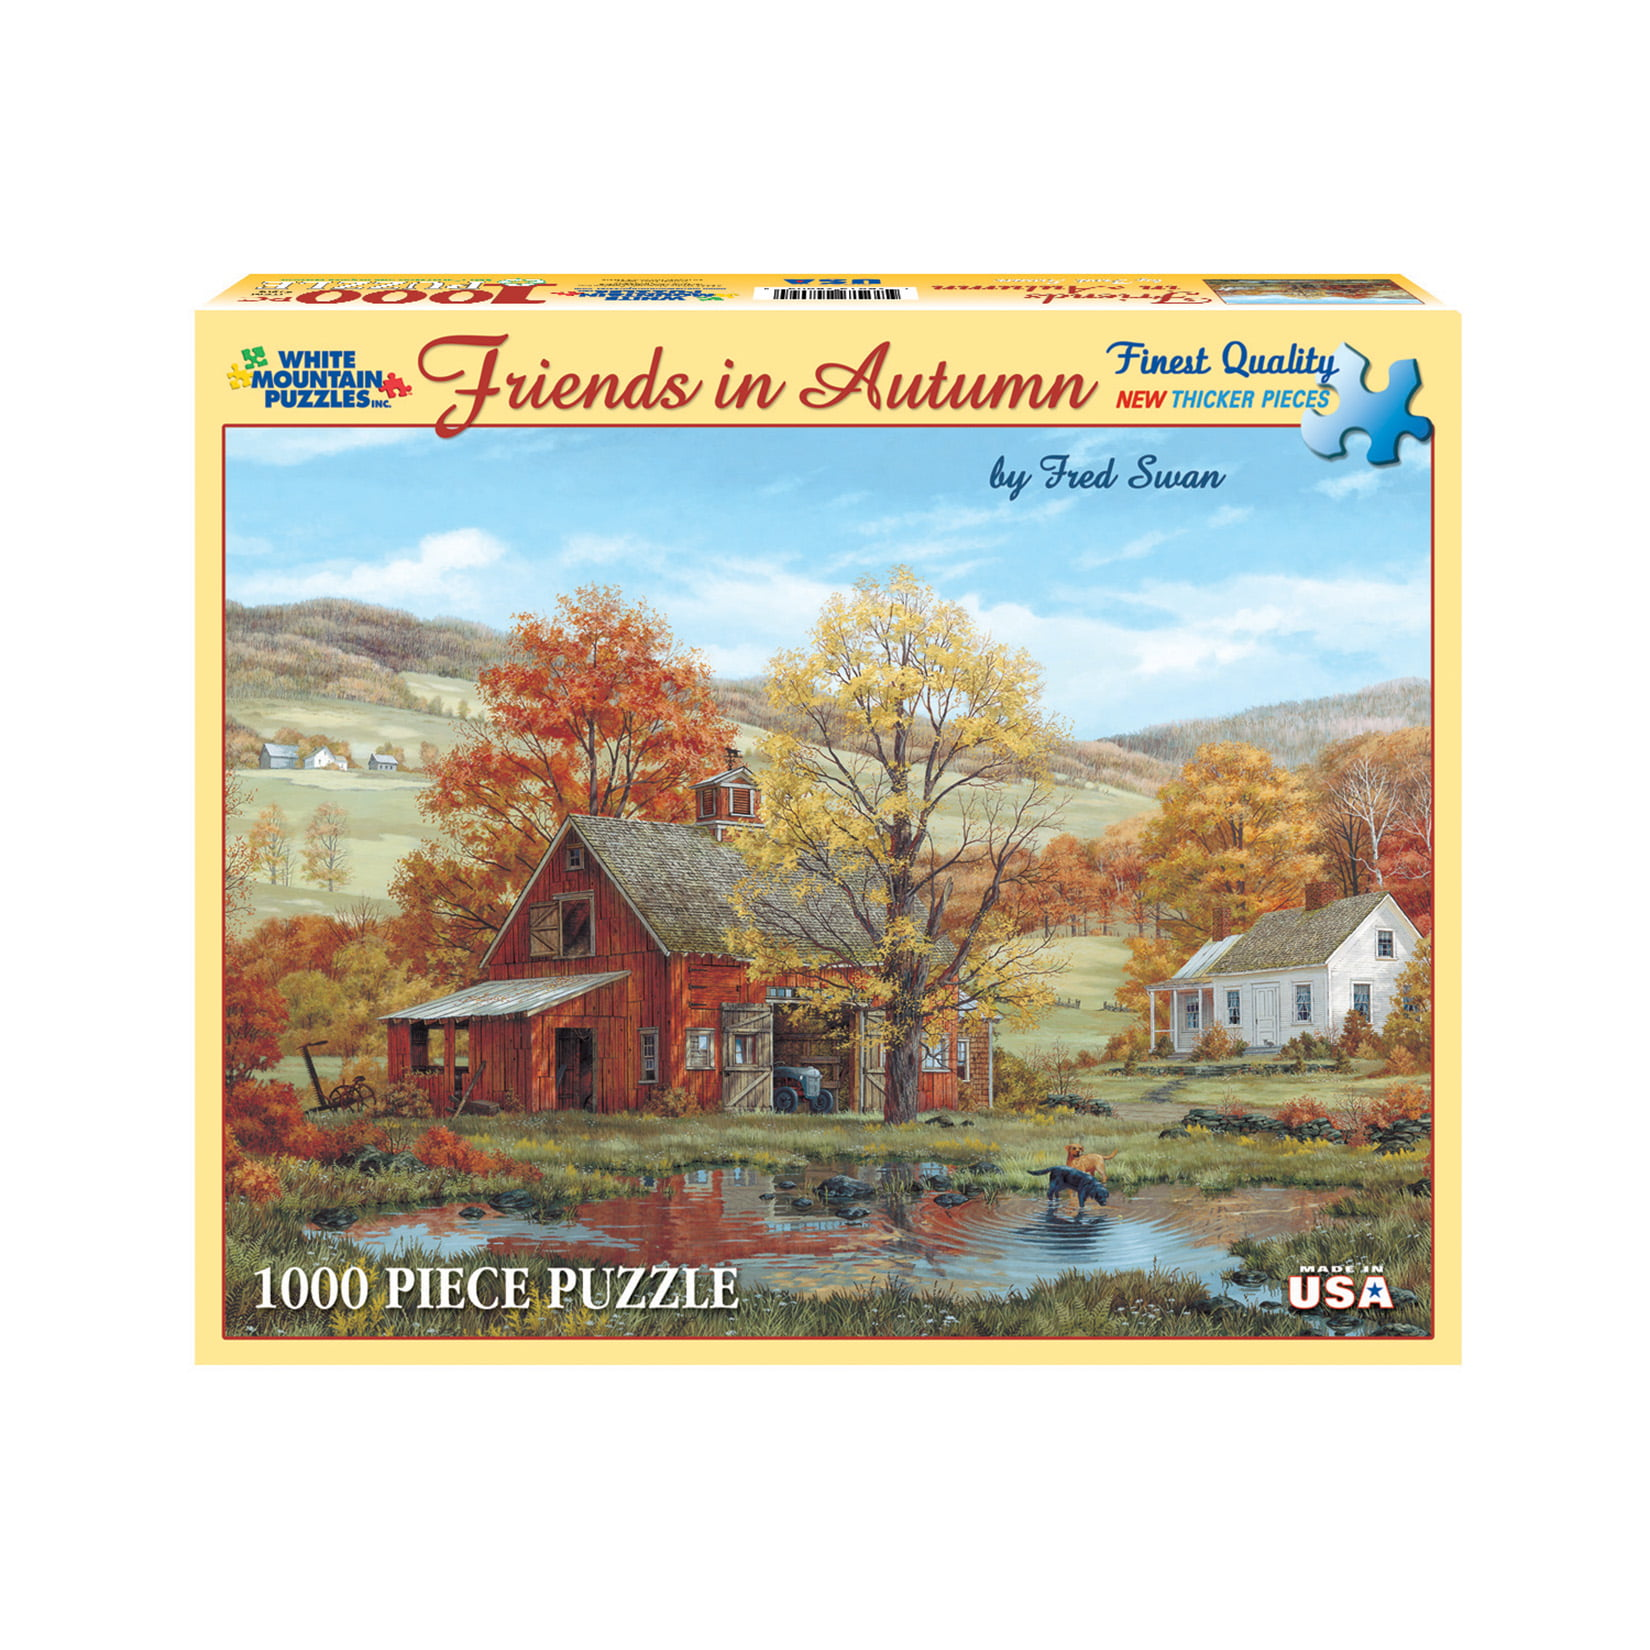 White Mountain Puzzles Friends in Autumn 1000 Piece Jigsaw Puzzle by White Mountain Puzzles